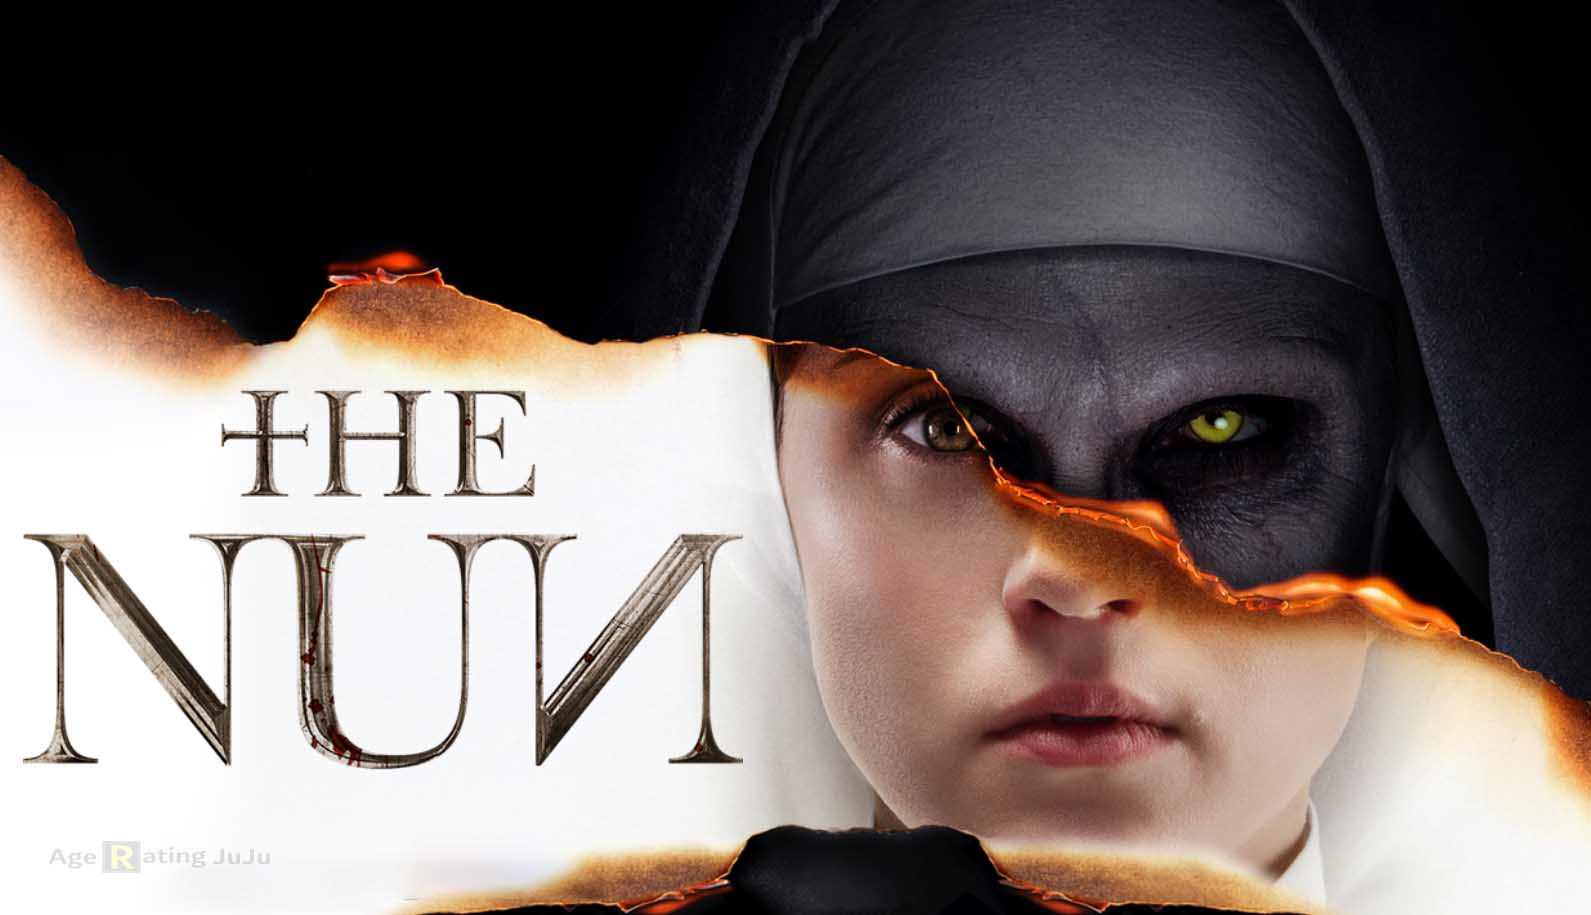 Movie Poster 2019: The Nun 2018 Restriction Certificate